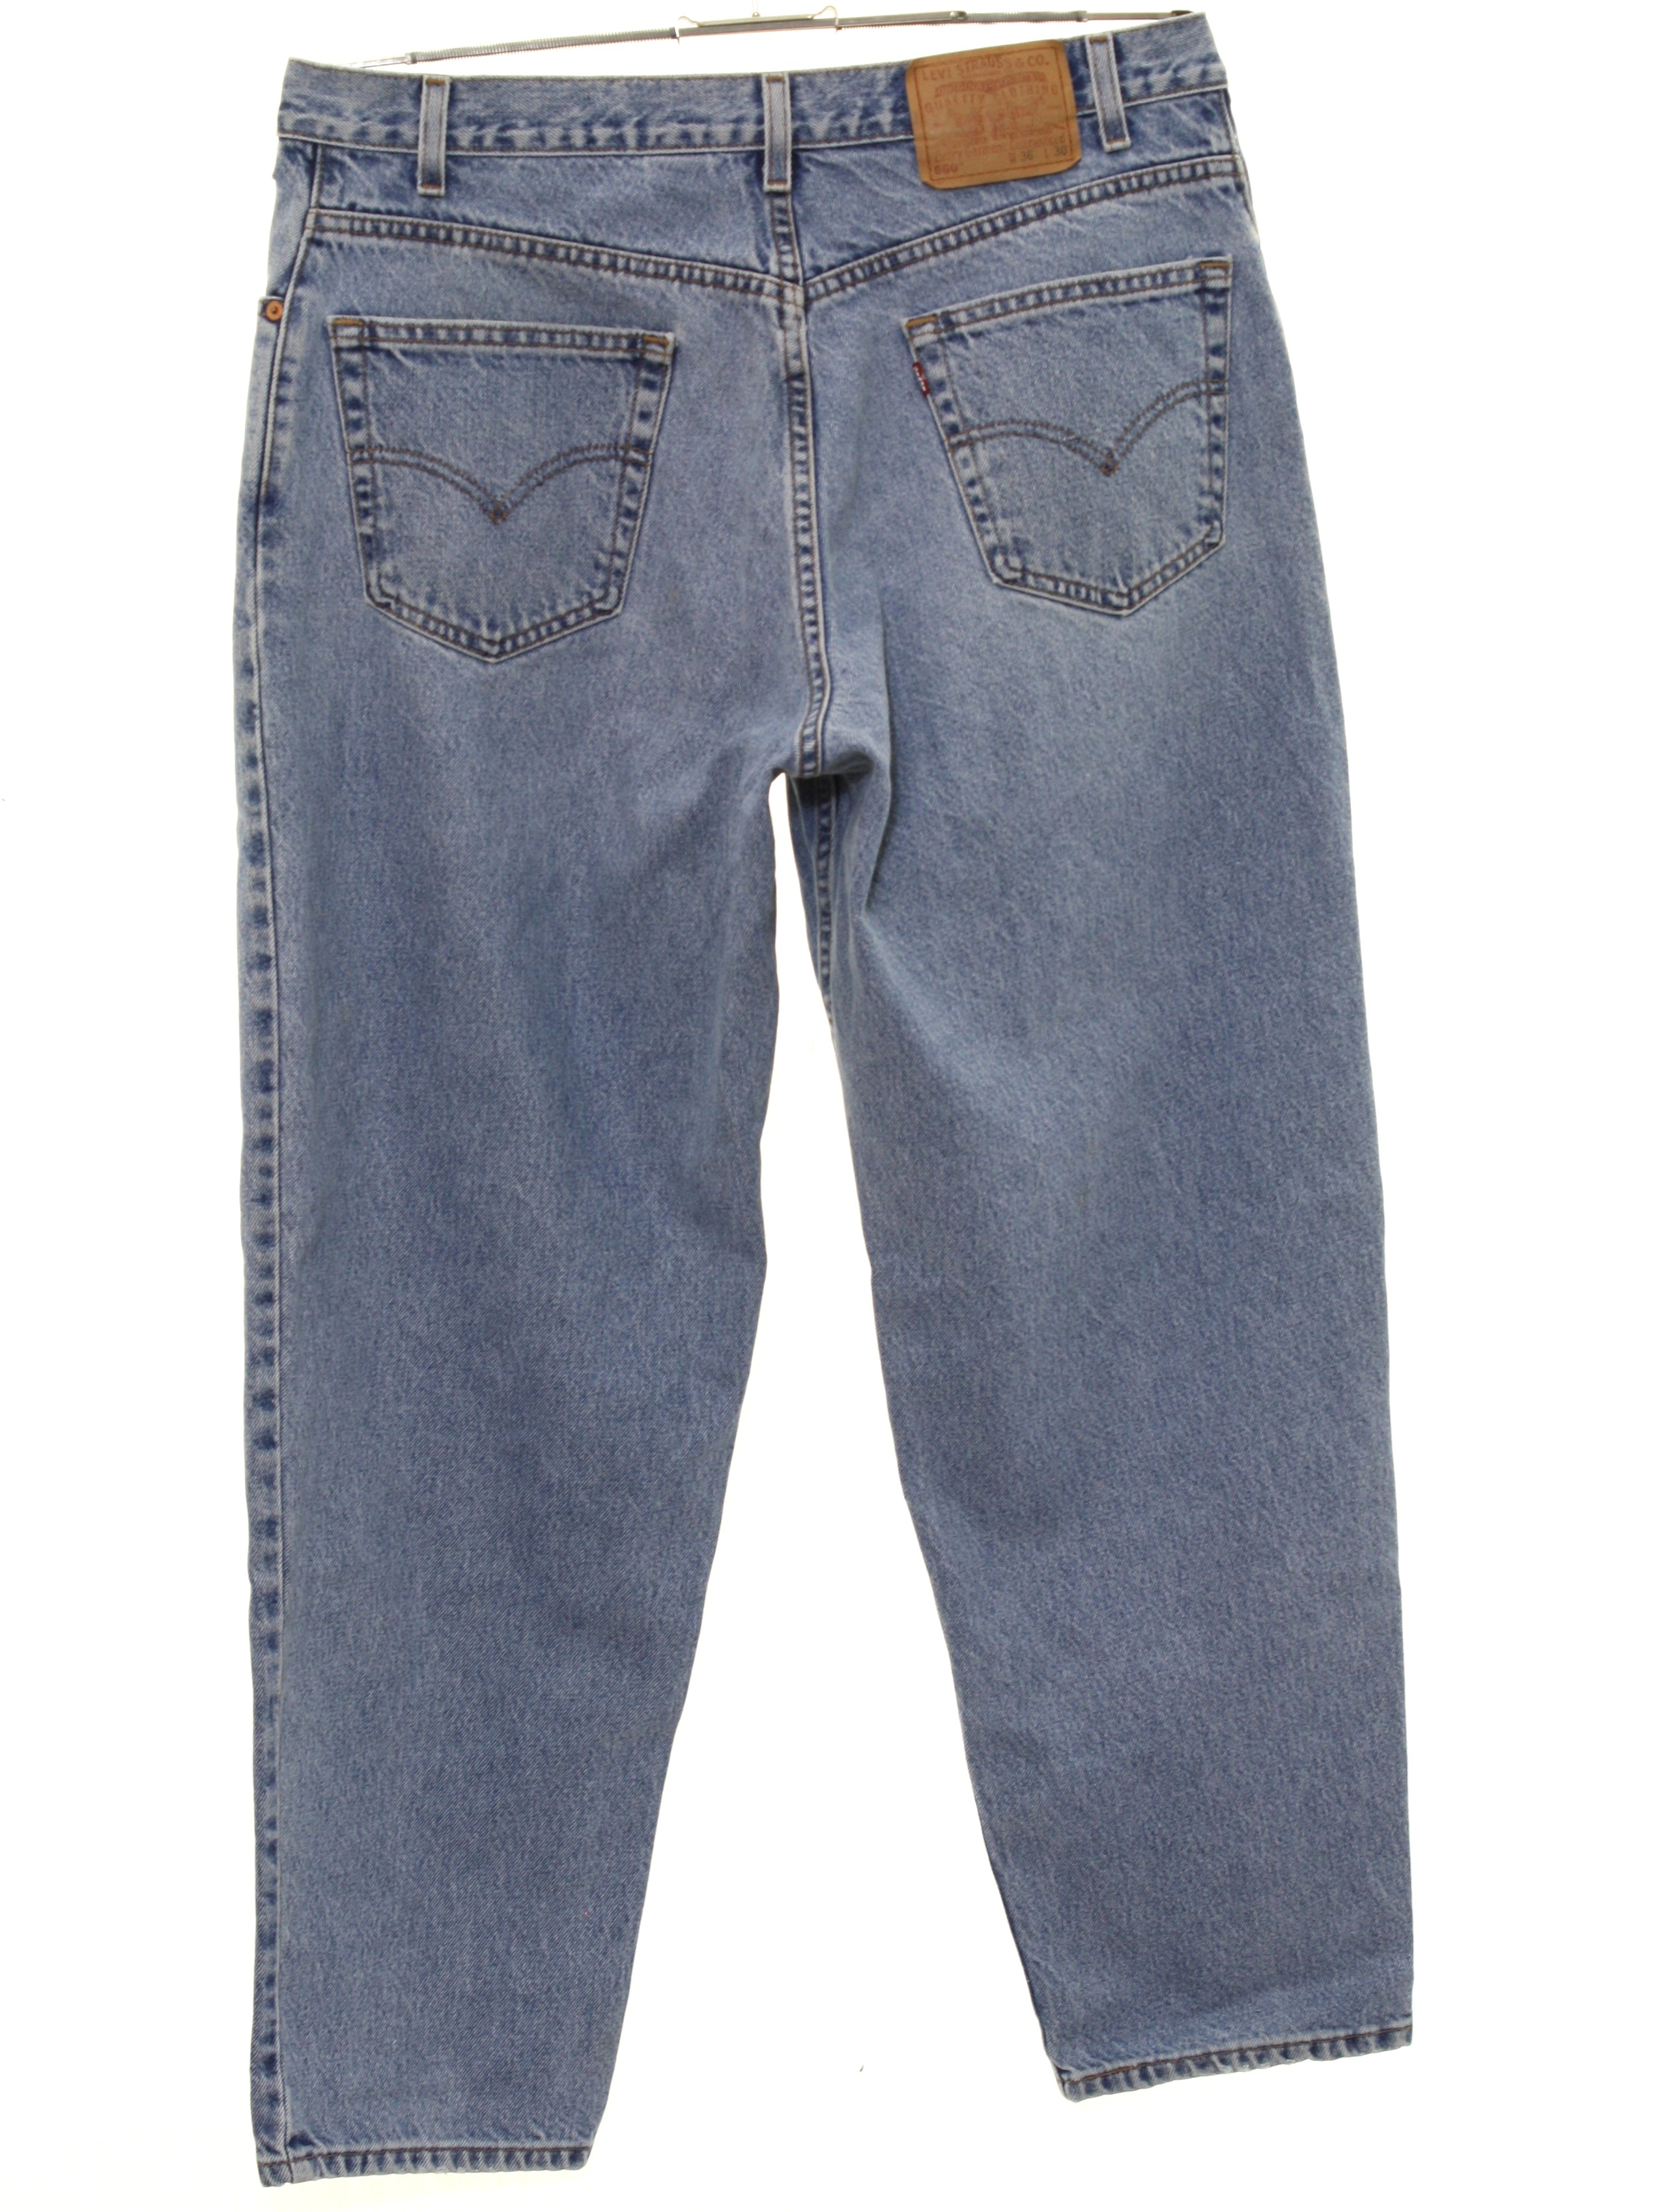 0f7e056cd54 Vintage Levis 560 1990s Pants: 90s -Levis 560- Mens slightly faded ...